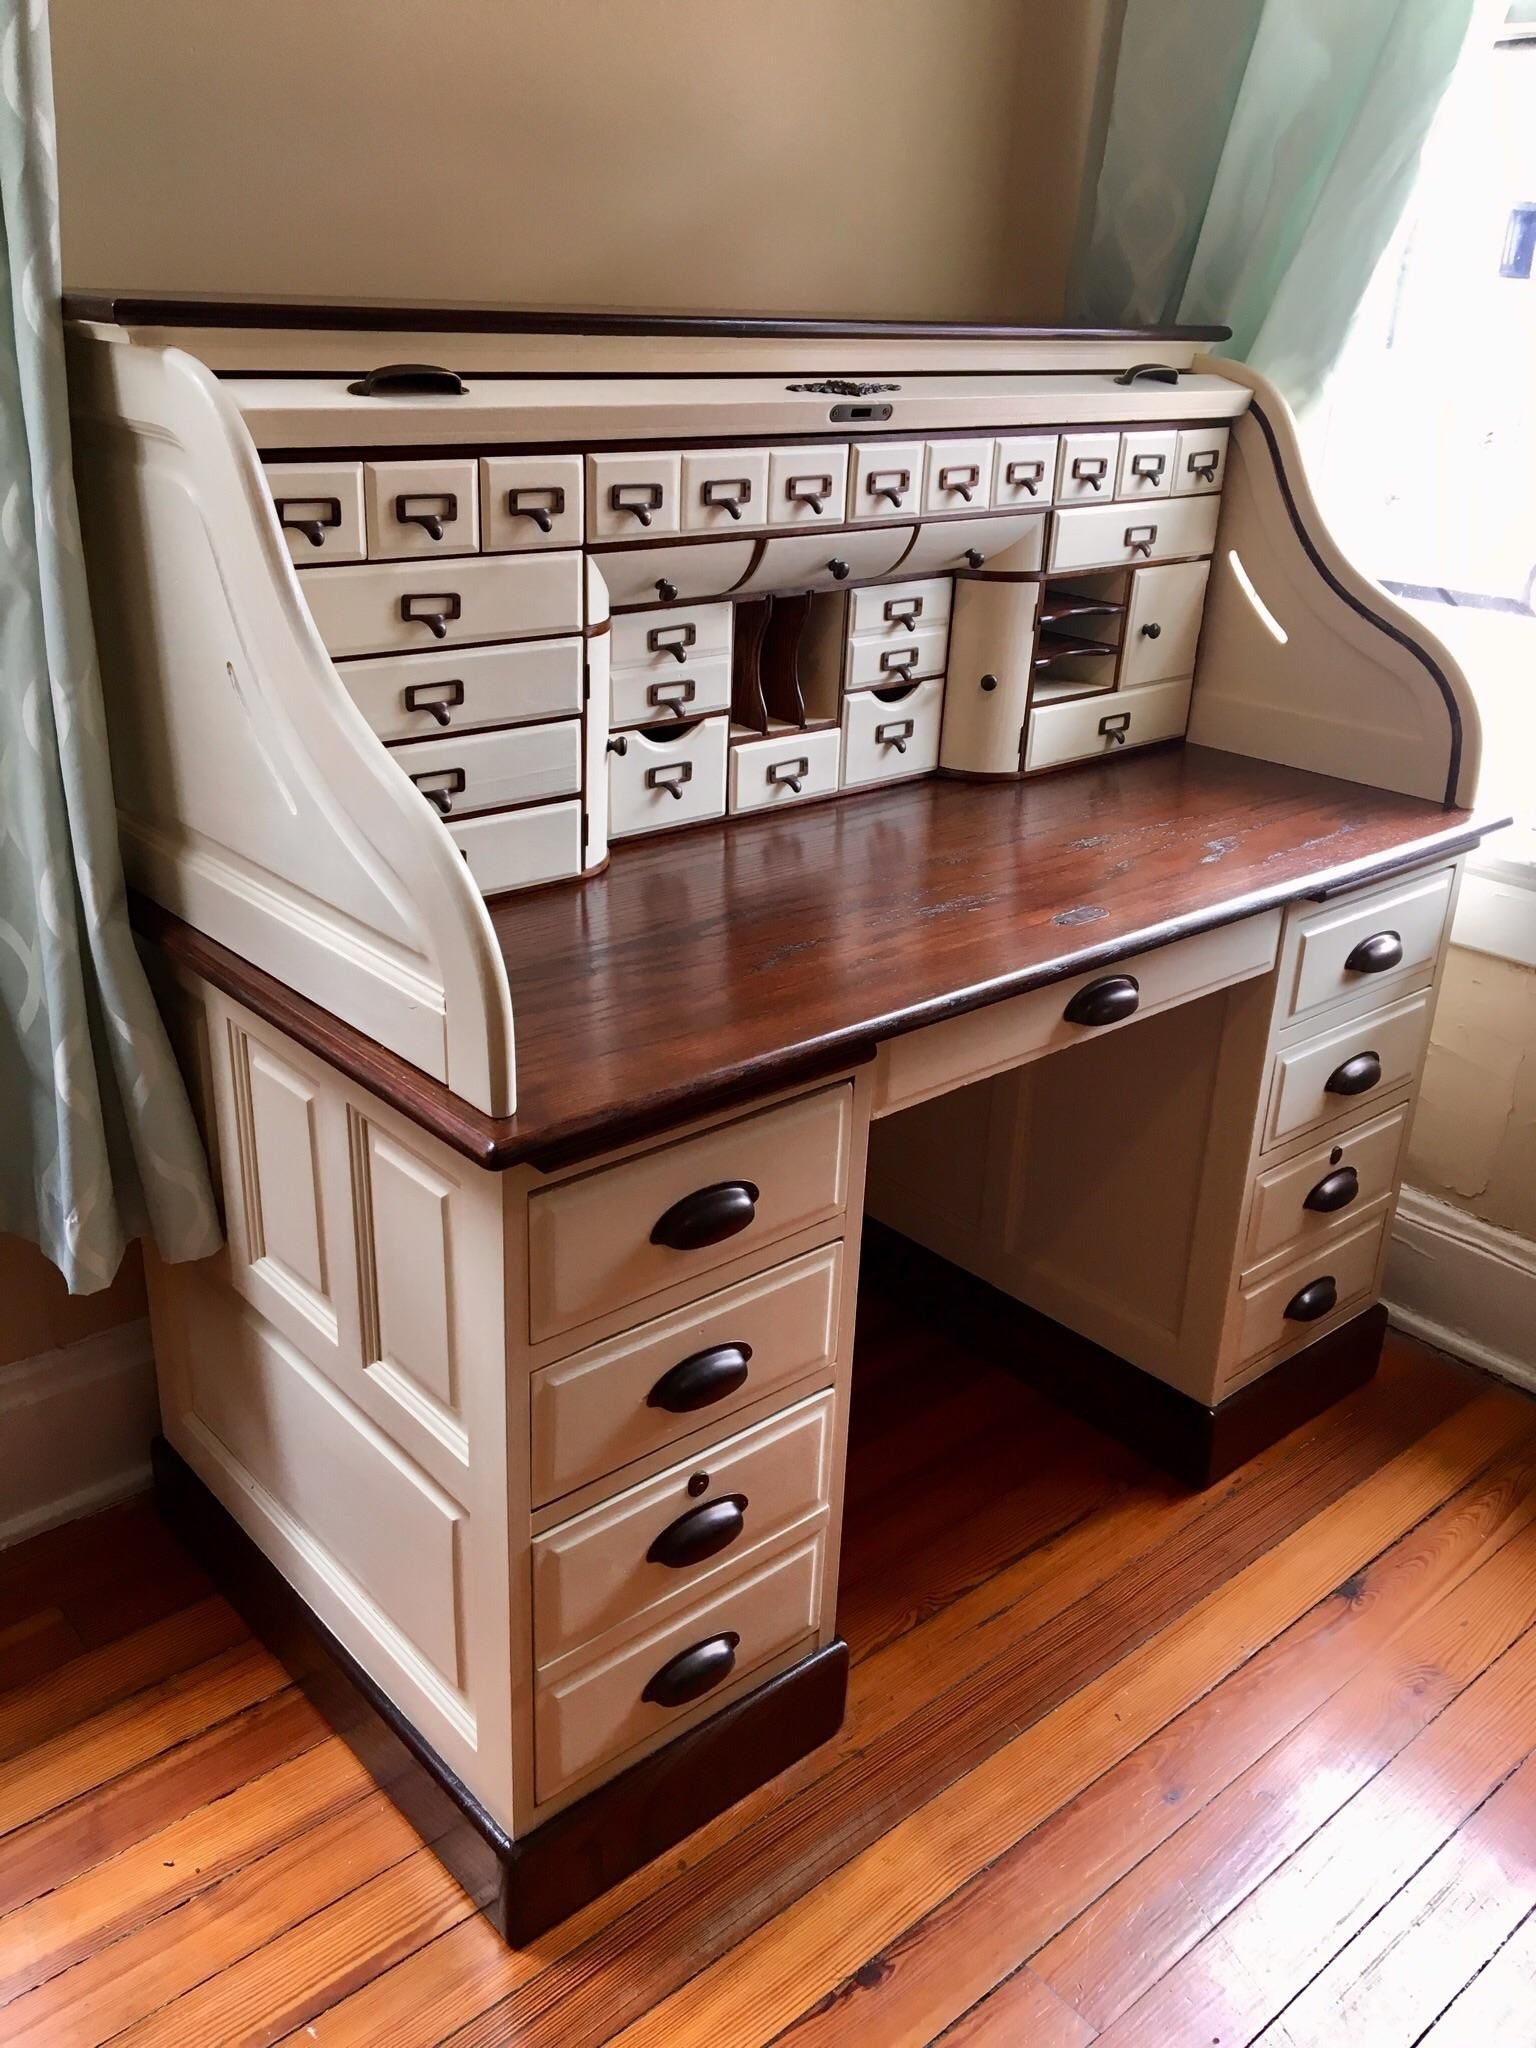 Oak Roll Top Desk After Refinishing And Some Minor Repairs Found For 100 On Fb Marketplace Thriftstorehauls Roll Top Desk Refurbished Desk Desk Furniture